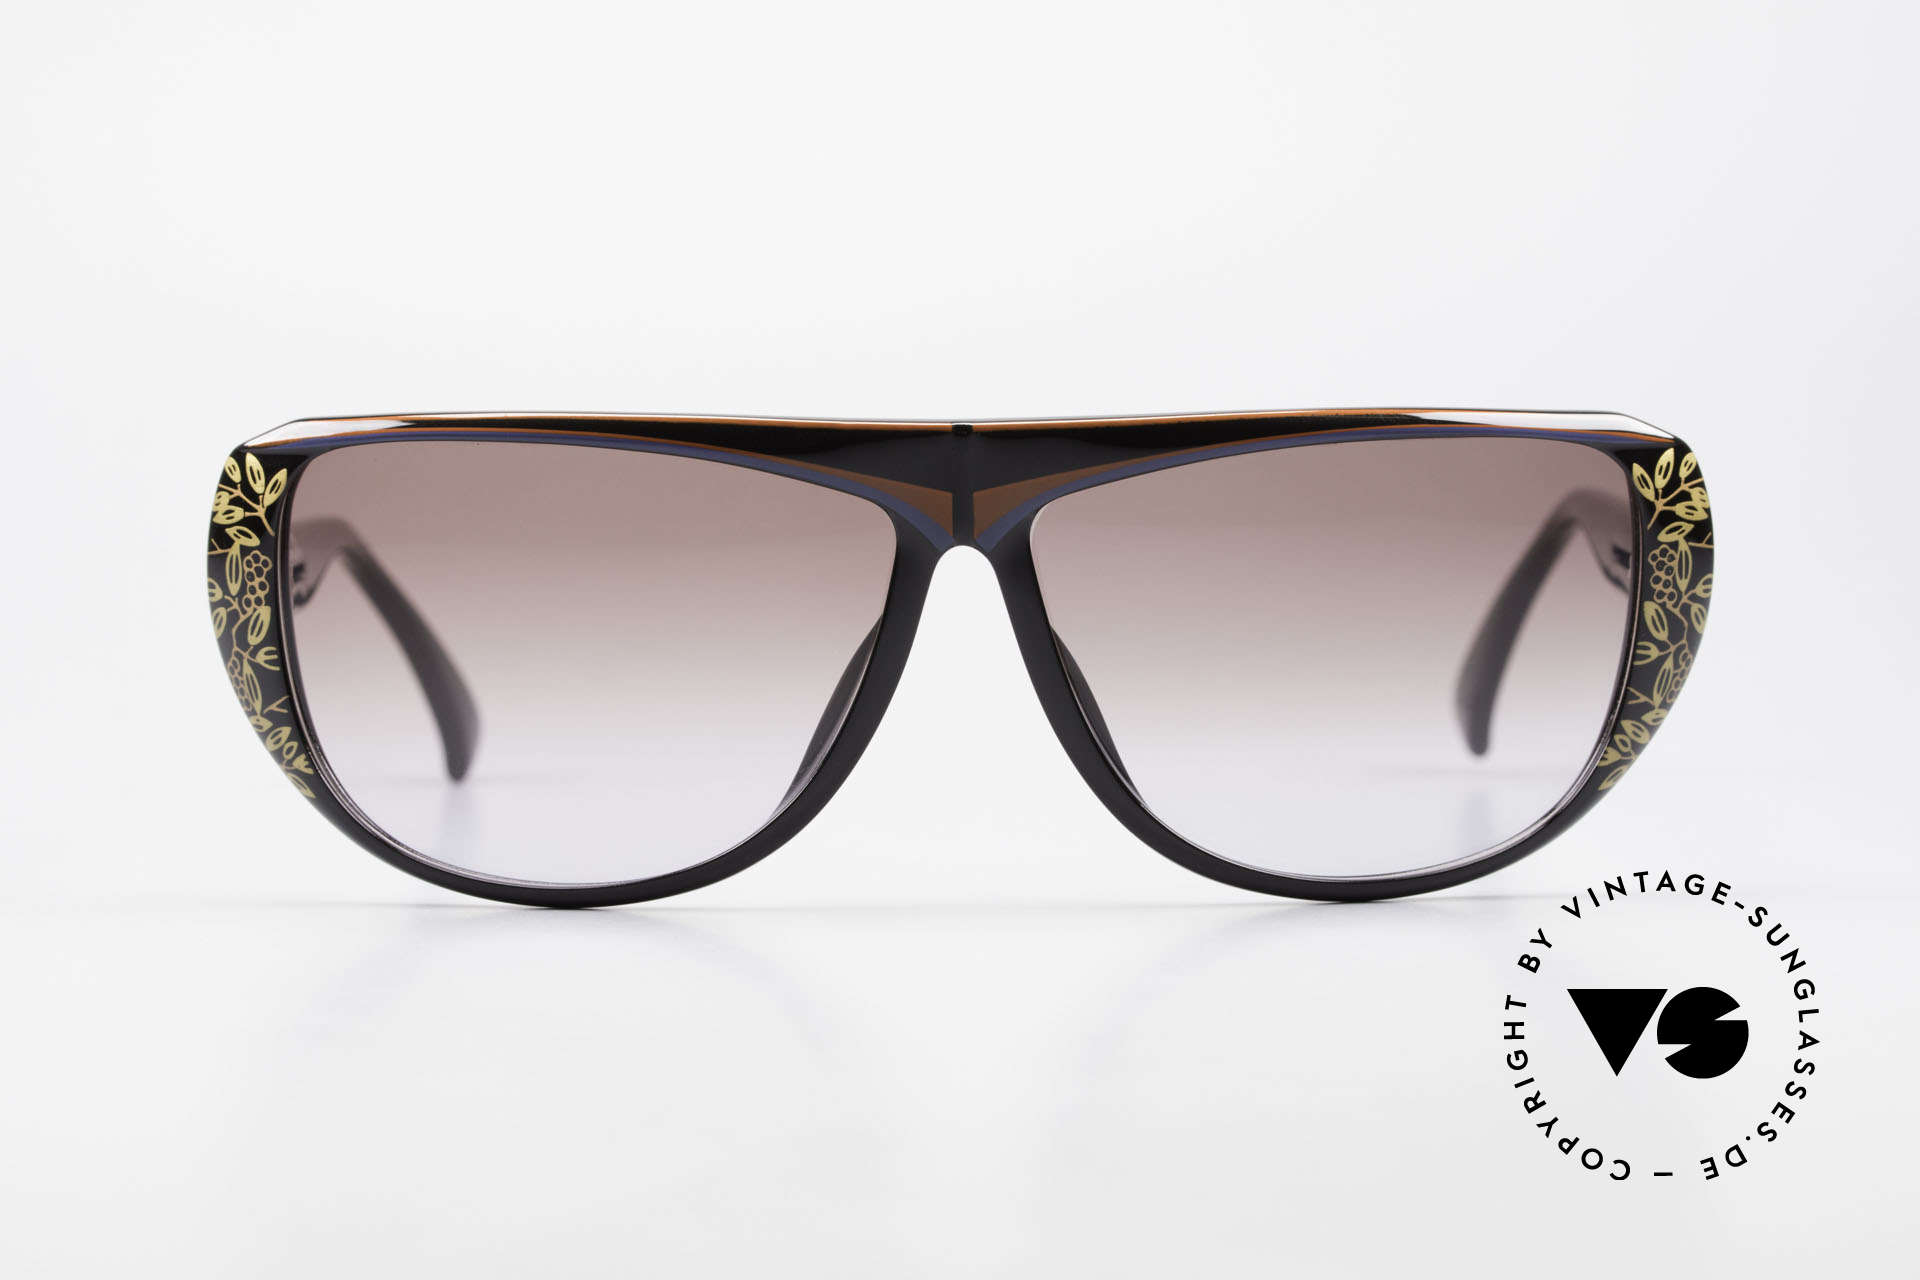 Christian Dior 2421 Ladies Sunglasses 80's Optyl, glamorous colors & pattern thanks to Optyl material, Made for Women